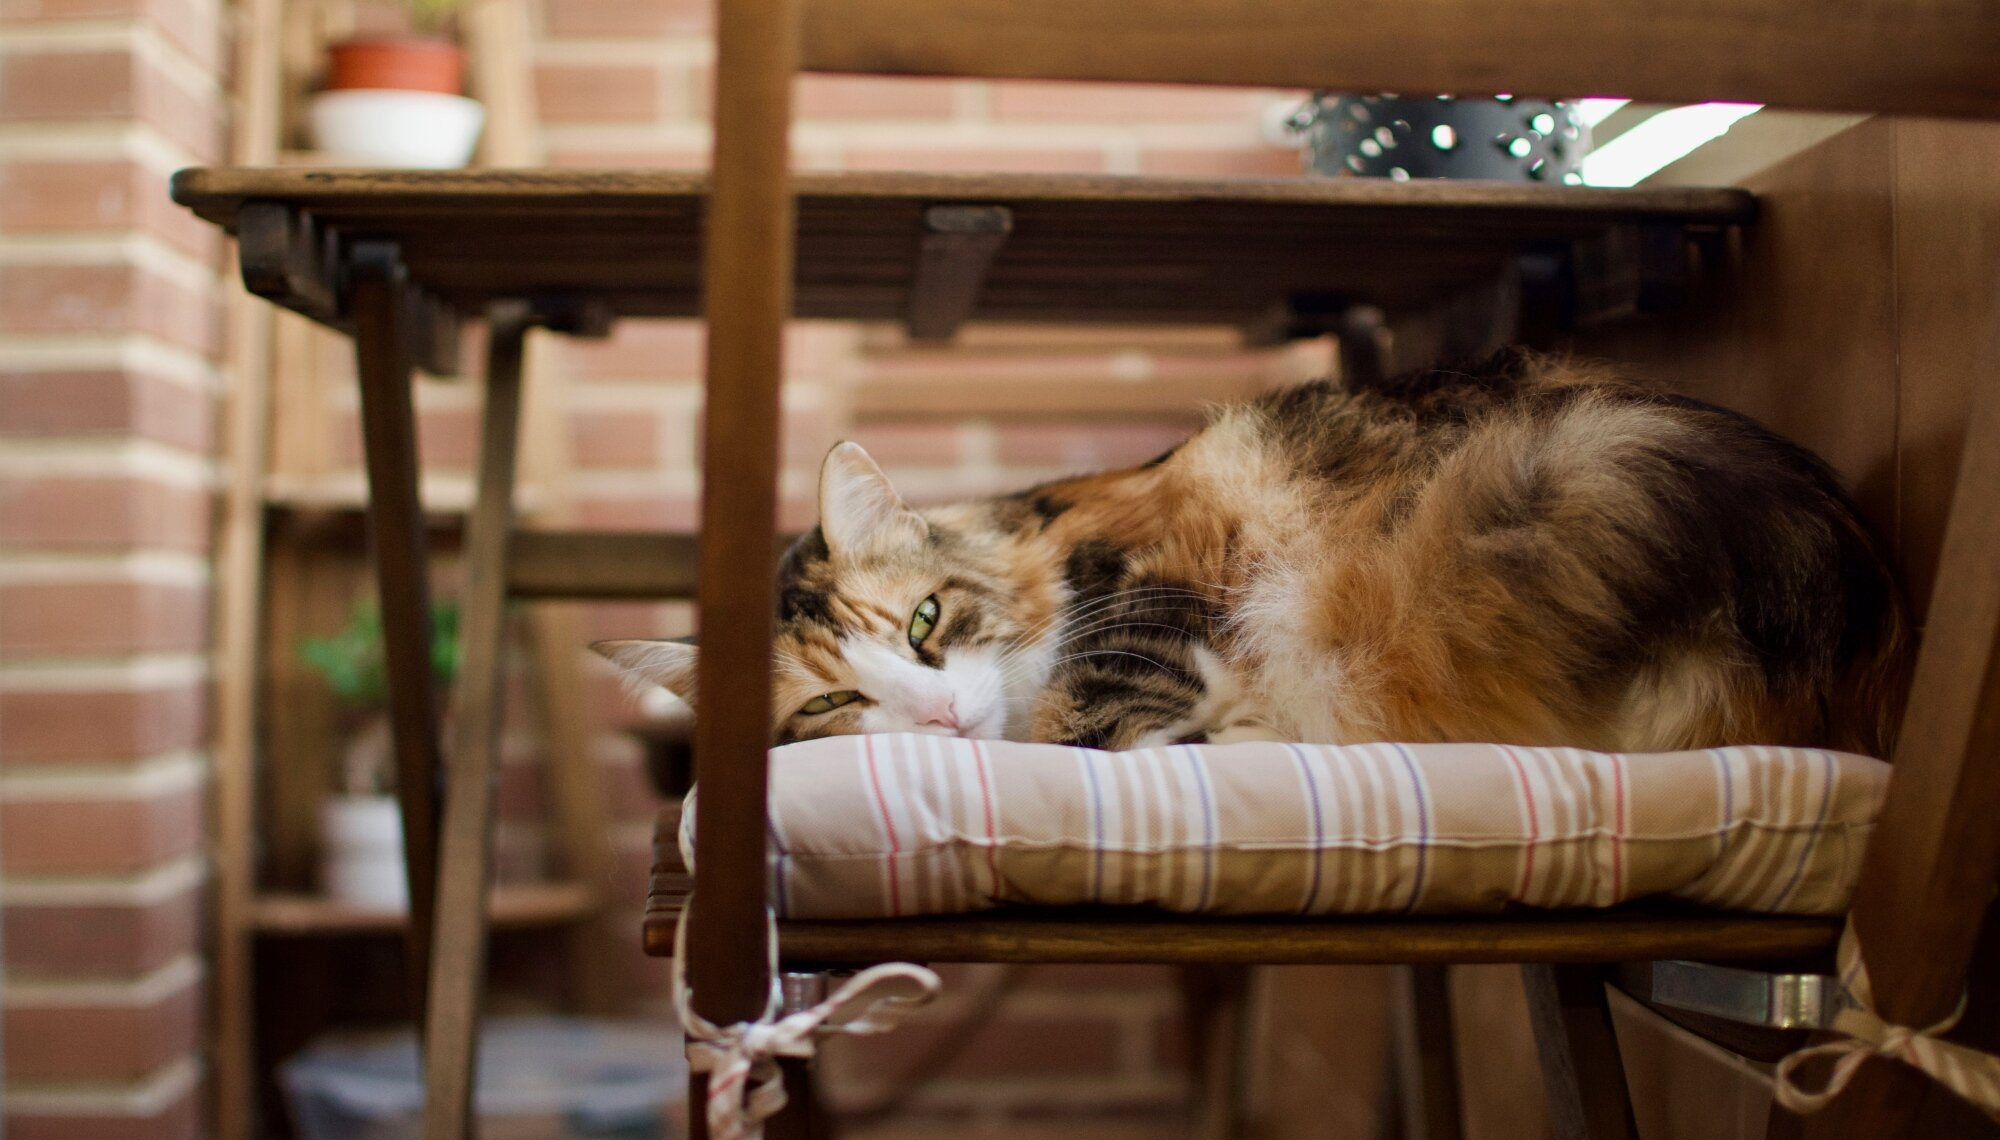 The Market - Feeding Time: A Healthy Diet For Your Cat